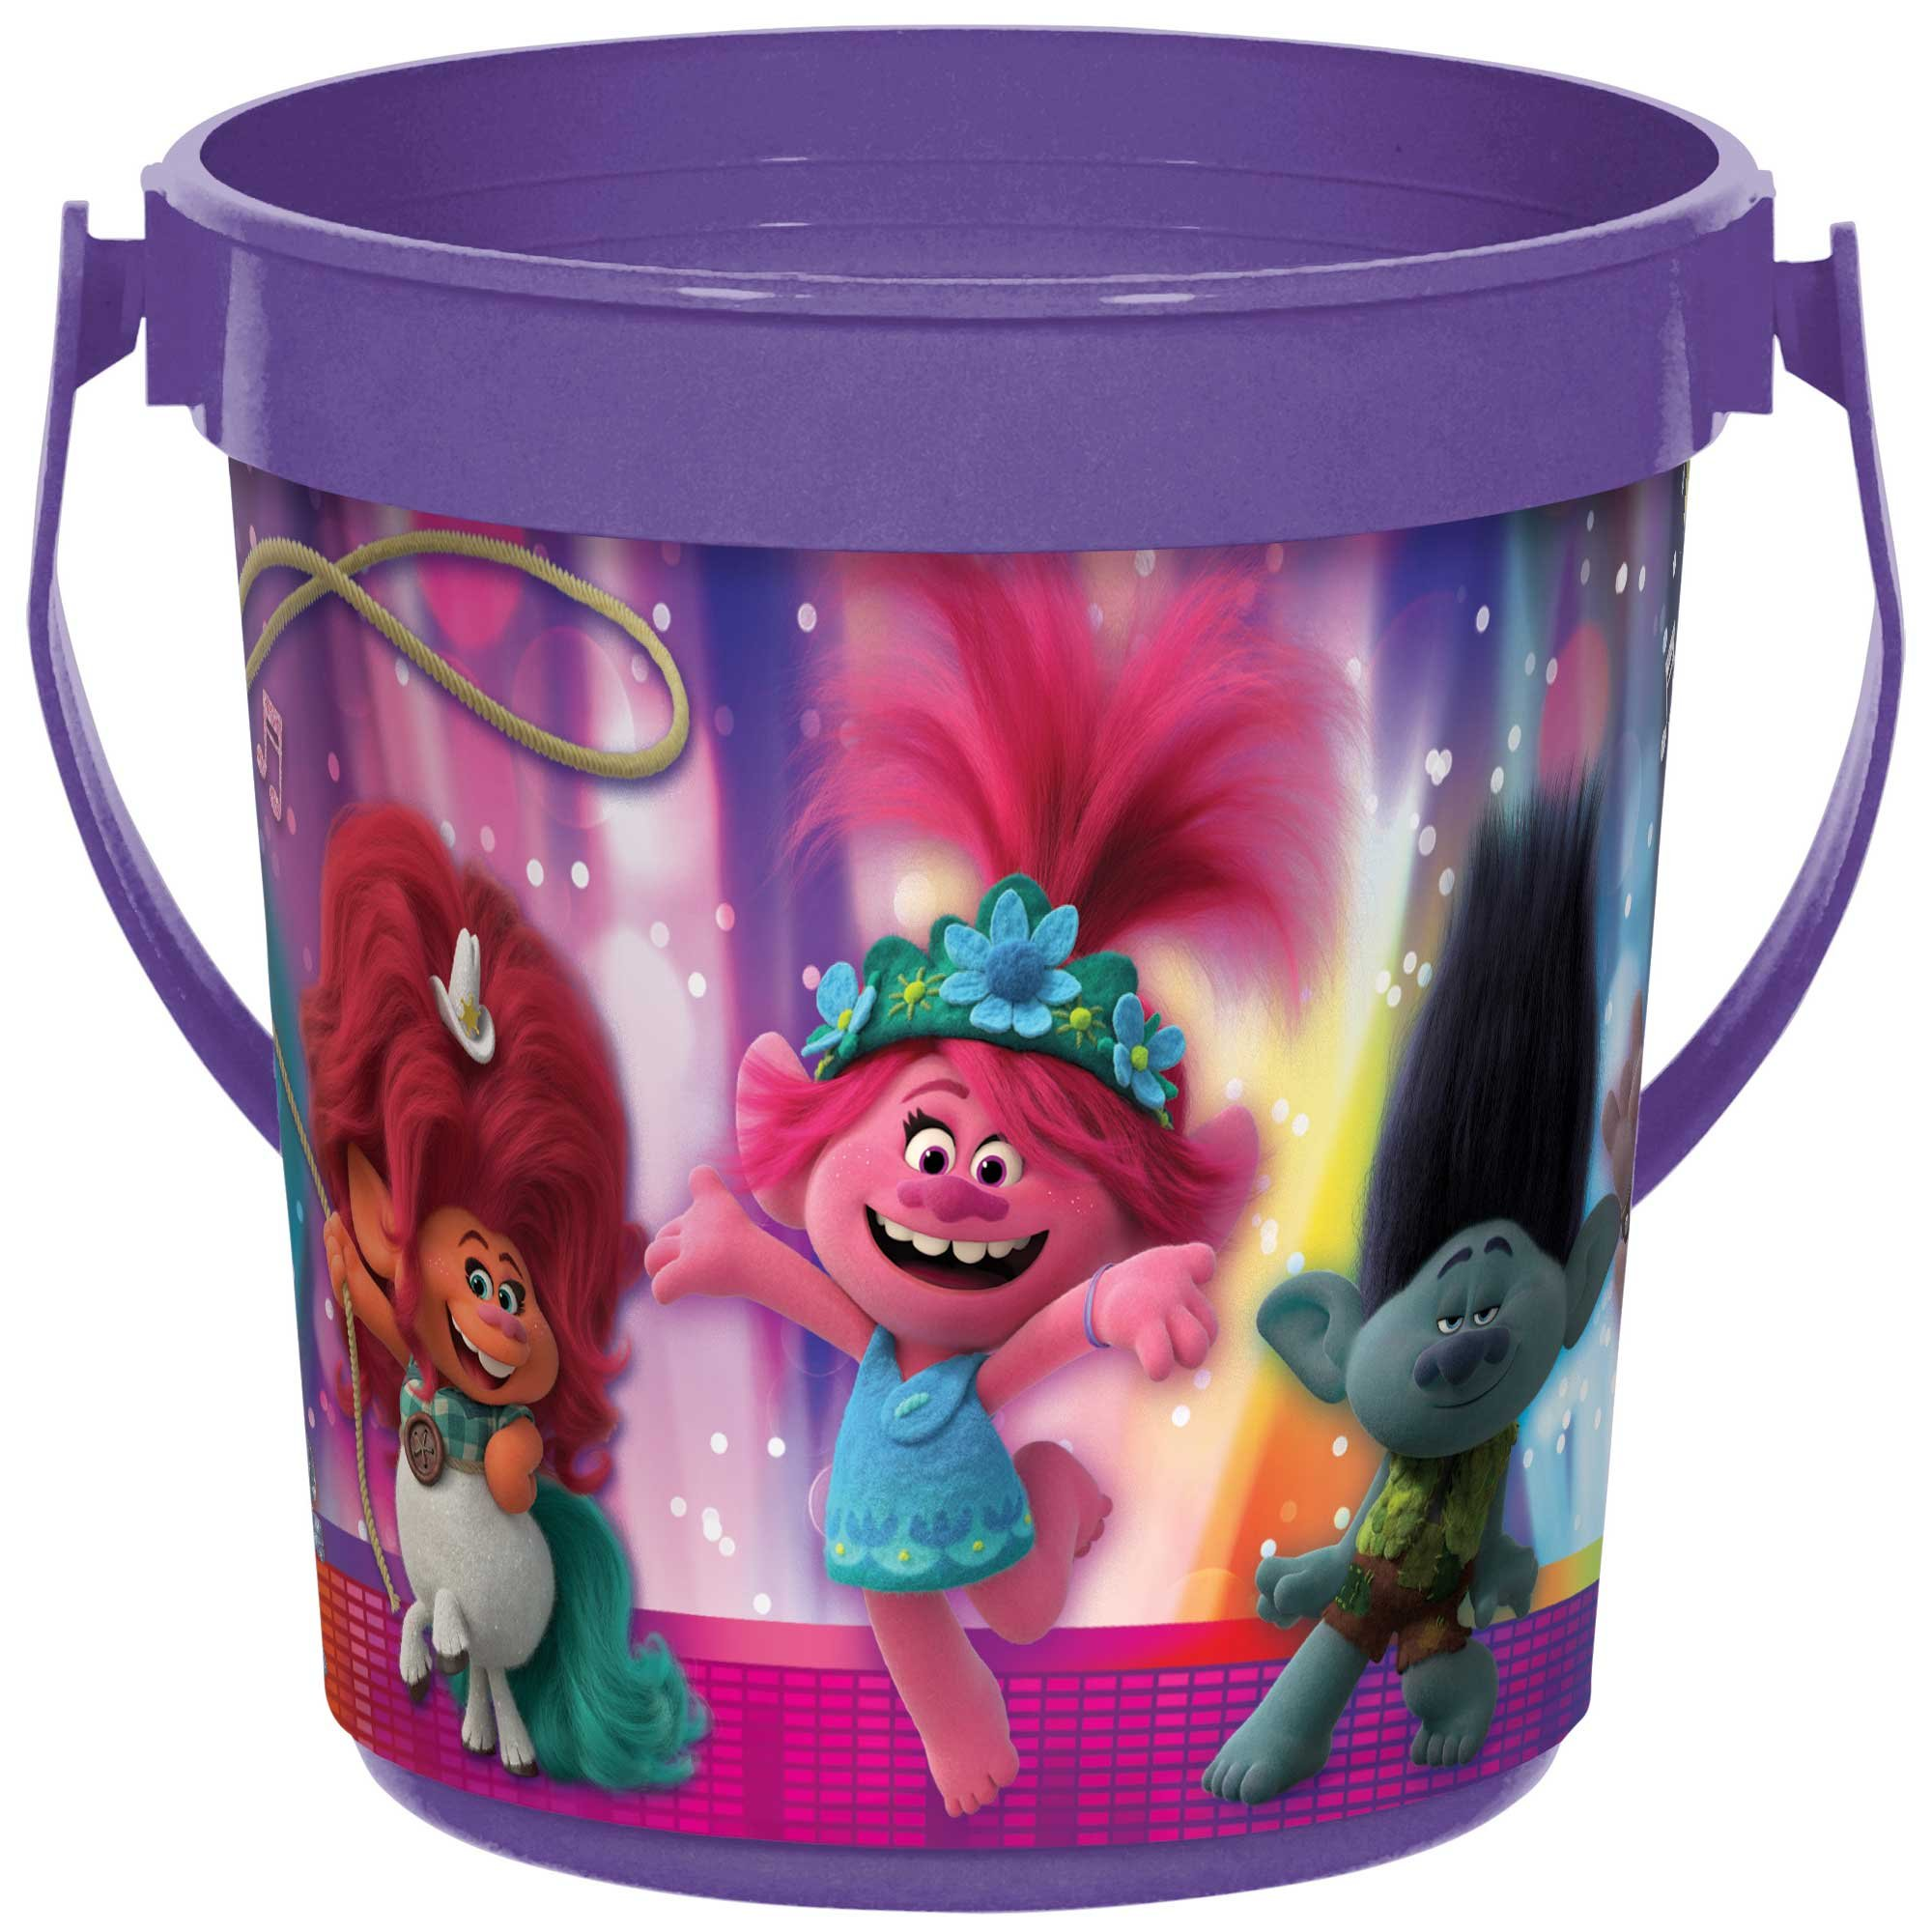 Trolls World Tour Favor Container